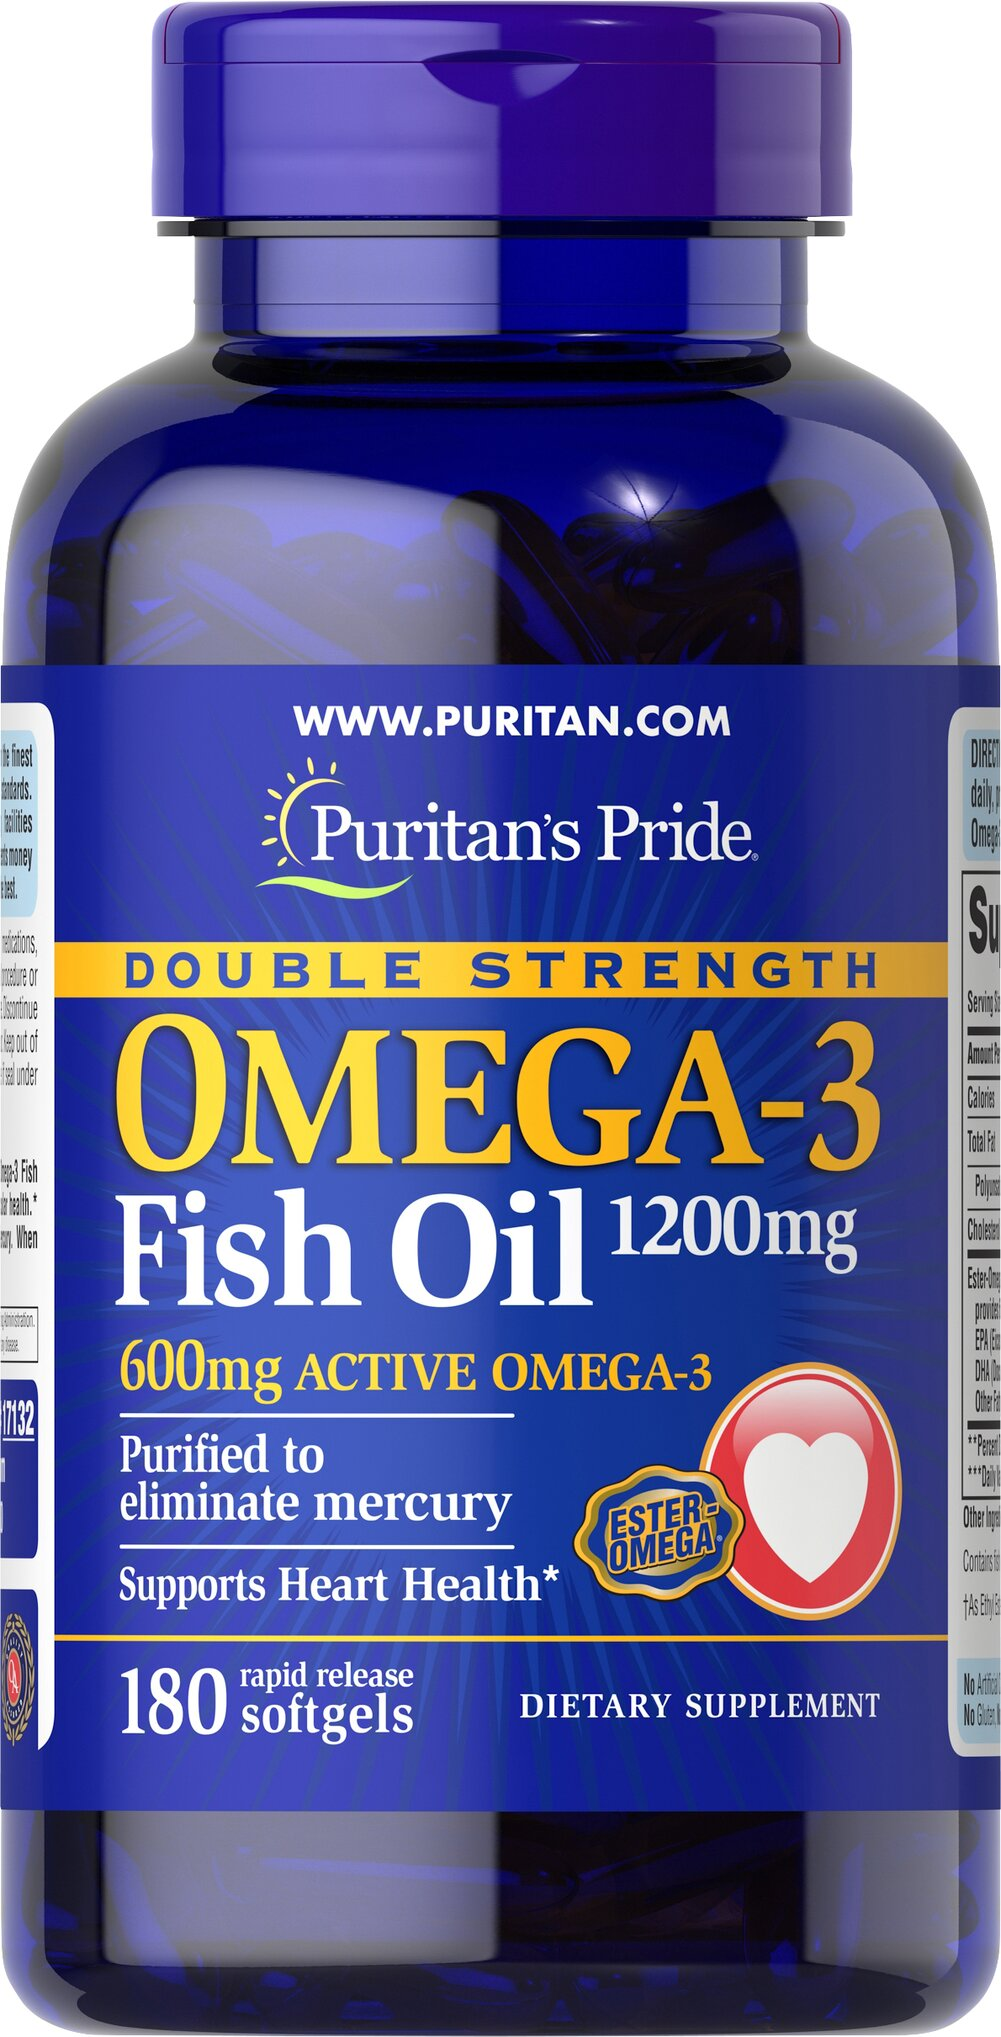 Double Strength Omega-3 Fish Oil 1200 mg <p><span></span>Provides 600mg of Active Omega-3.</p> <p><span></span>Omega-3 fatty acids are important for heart health.**</p> <p><span></span>Purified to eliminate mercury.</p> <p>Each double strength Omega-3 fish oil softgel contains 1200mg of Ester-Omega® Fish Oil. This provides 600mg of Total Omega-3 Fatty Acids comprising of DHA, EPA and other fatty acids. Supportive